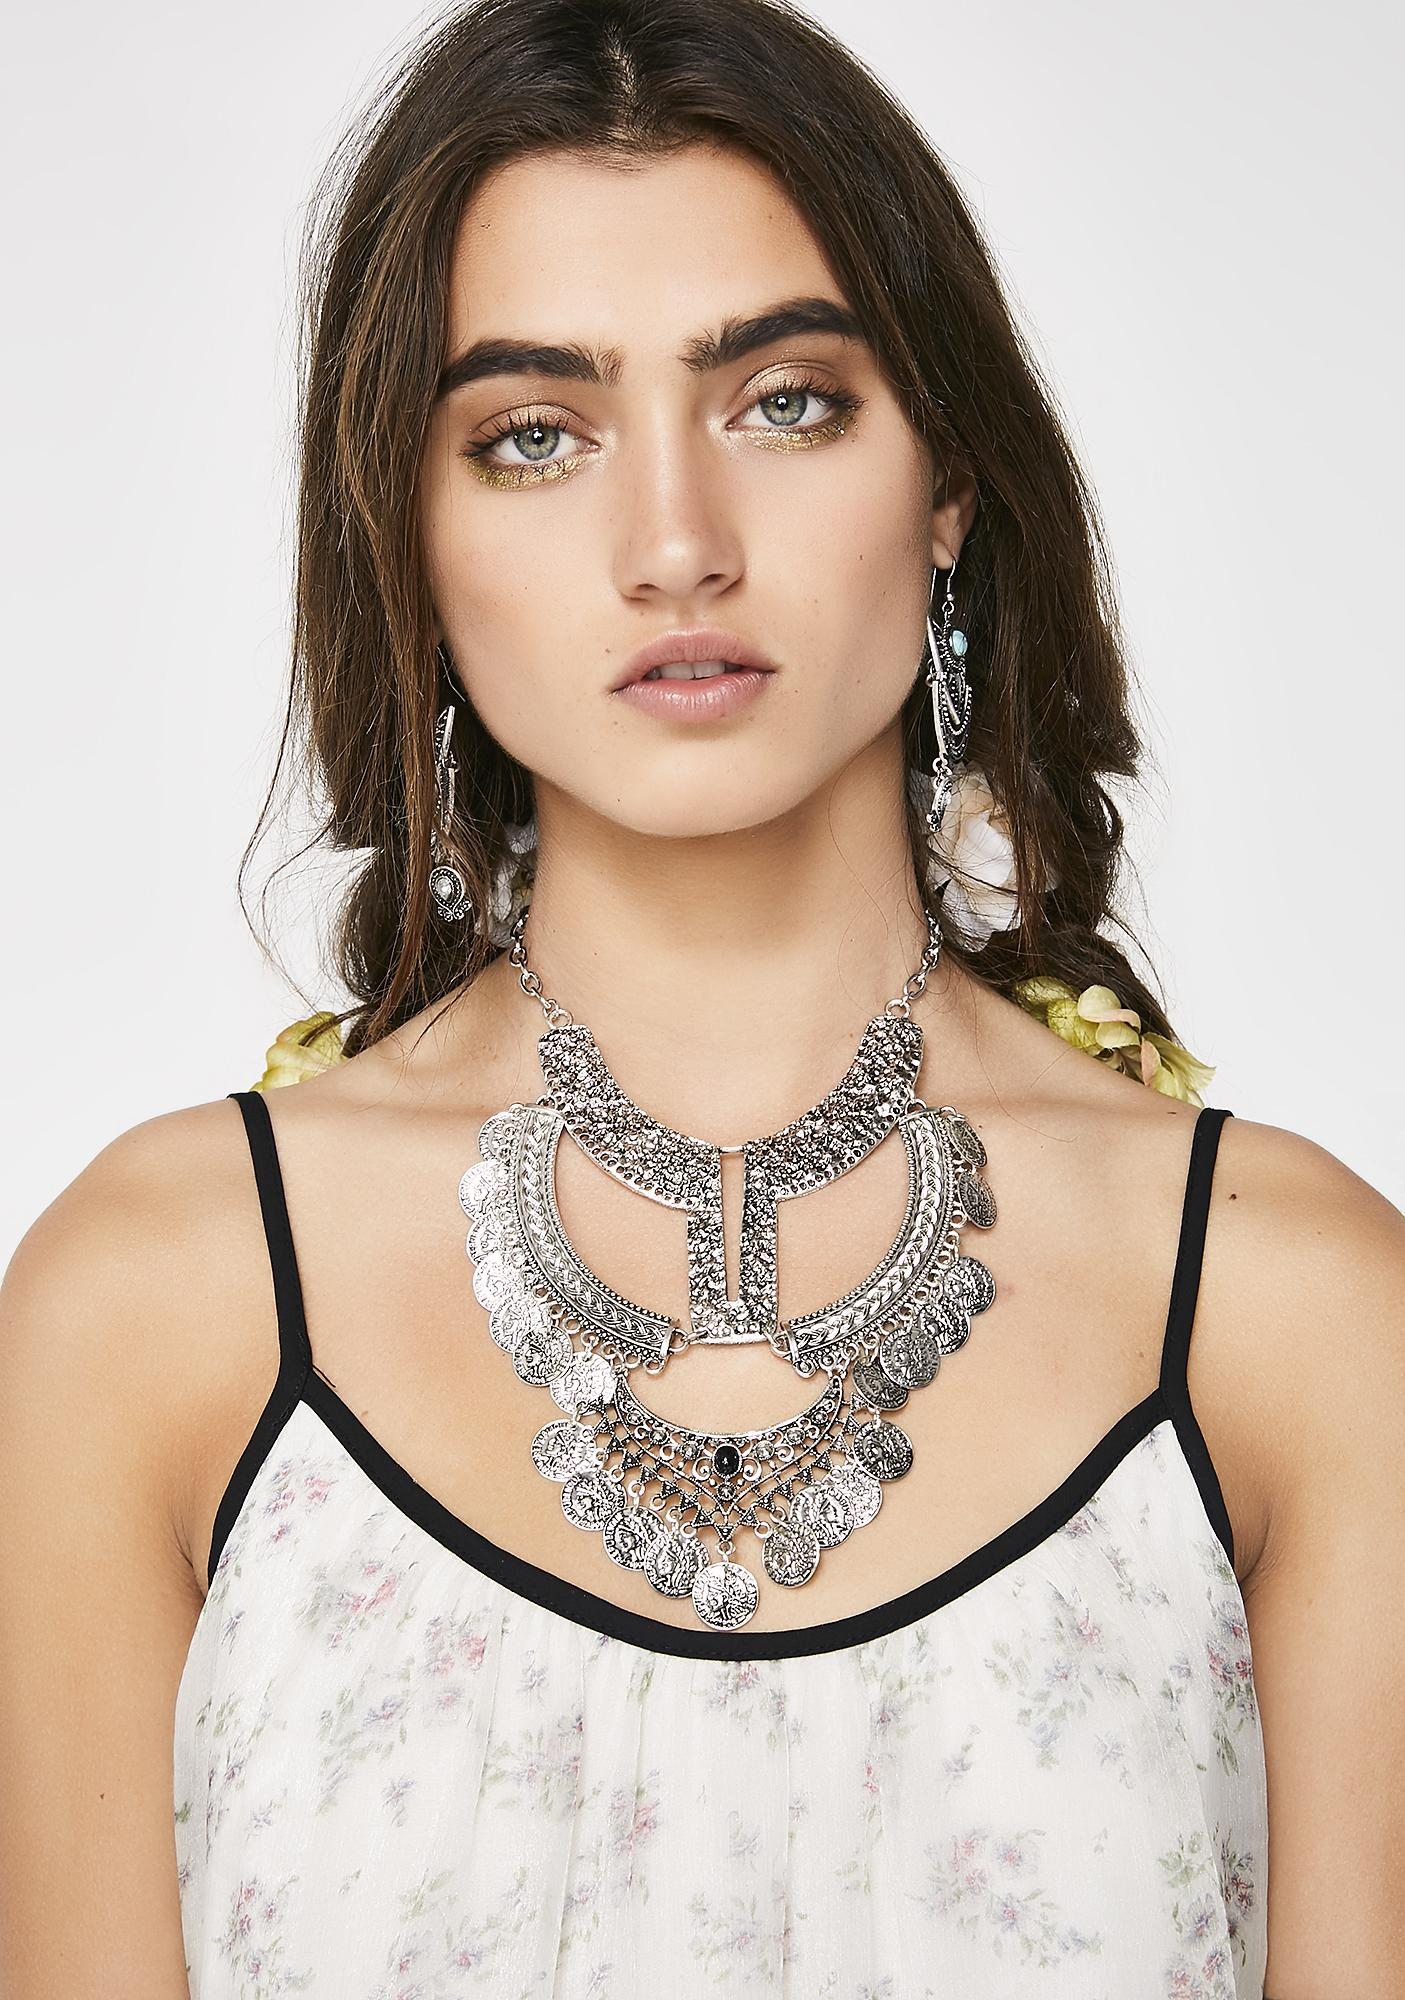 Take Ya On A Tripp Statement Necklace